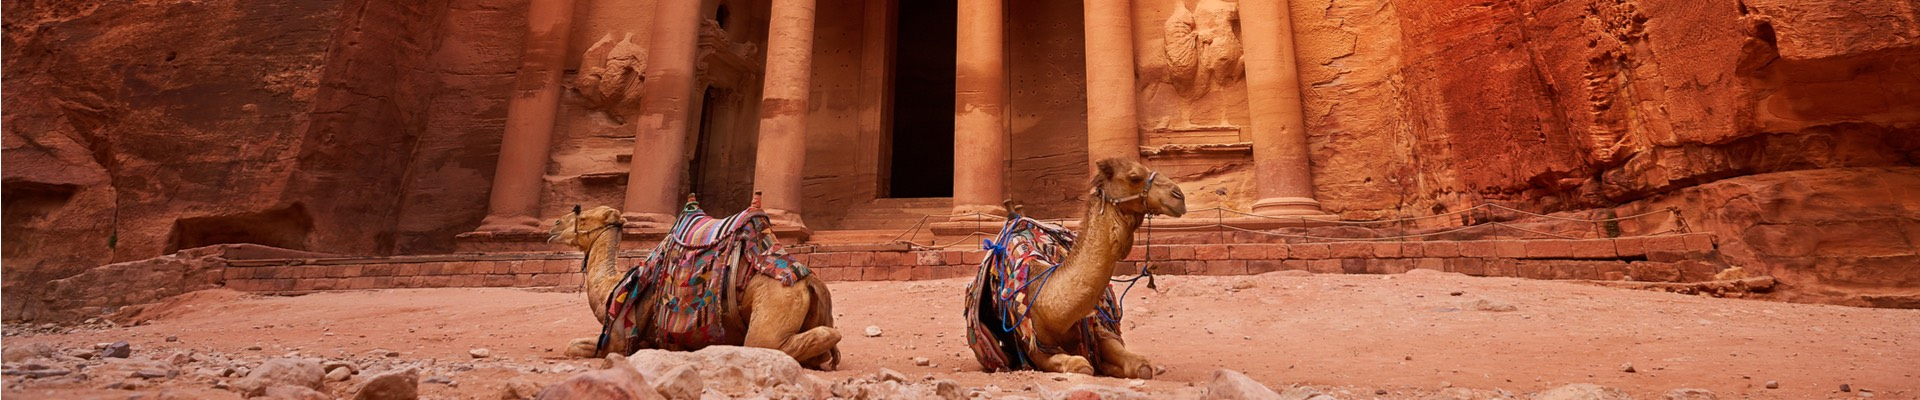 Journey to Israel and Petra 9 Day Tour